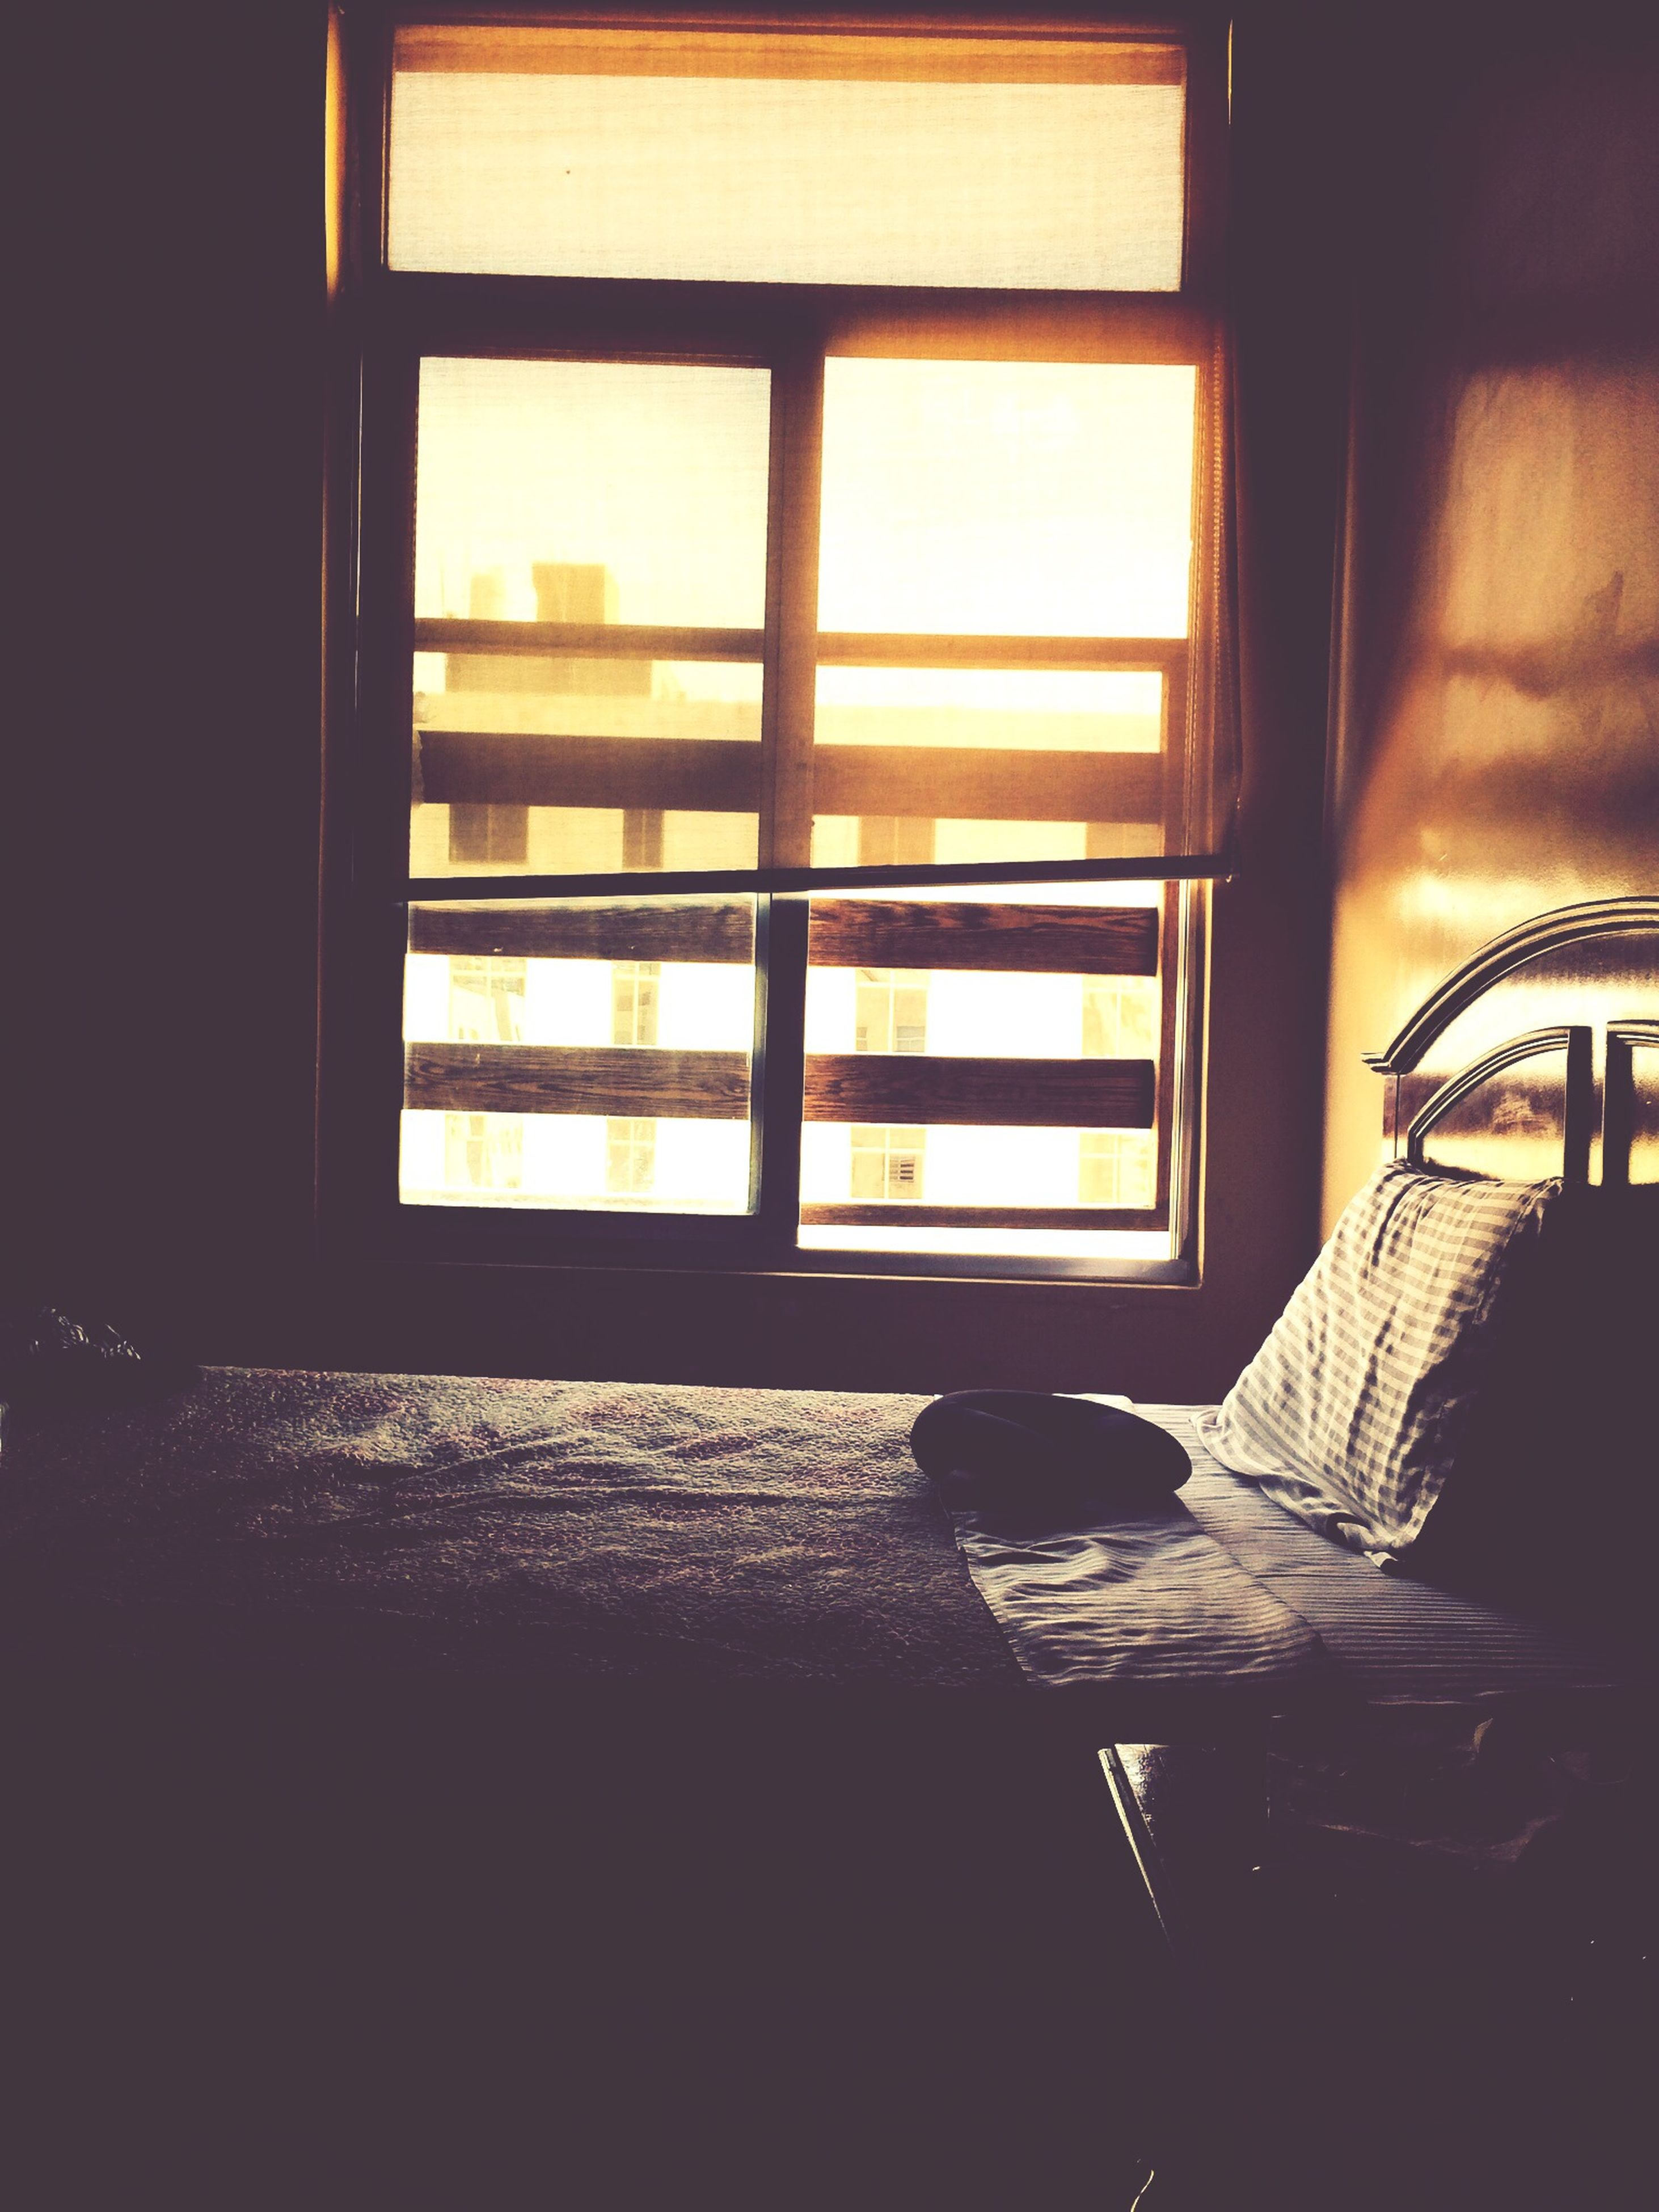 indoors, window, home interior, glass - material, architecture, sunlight, built structure, chair, table, house, transparent, absence, no people, shadow, day, empty, window sill, dark, open, wall - building feature